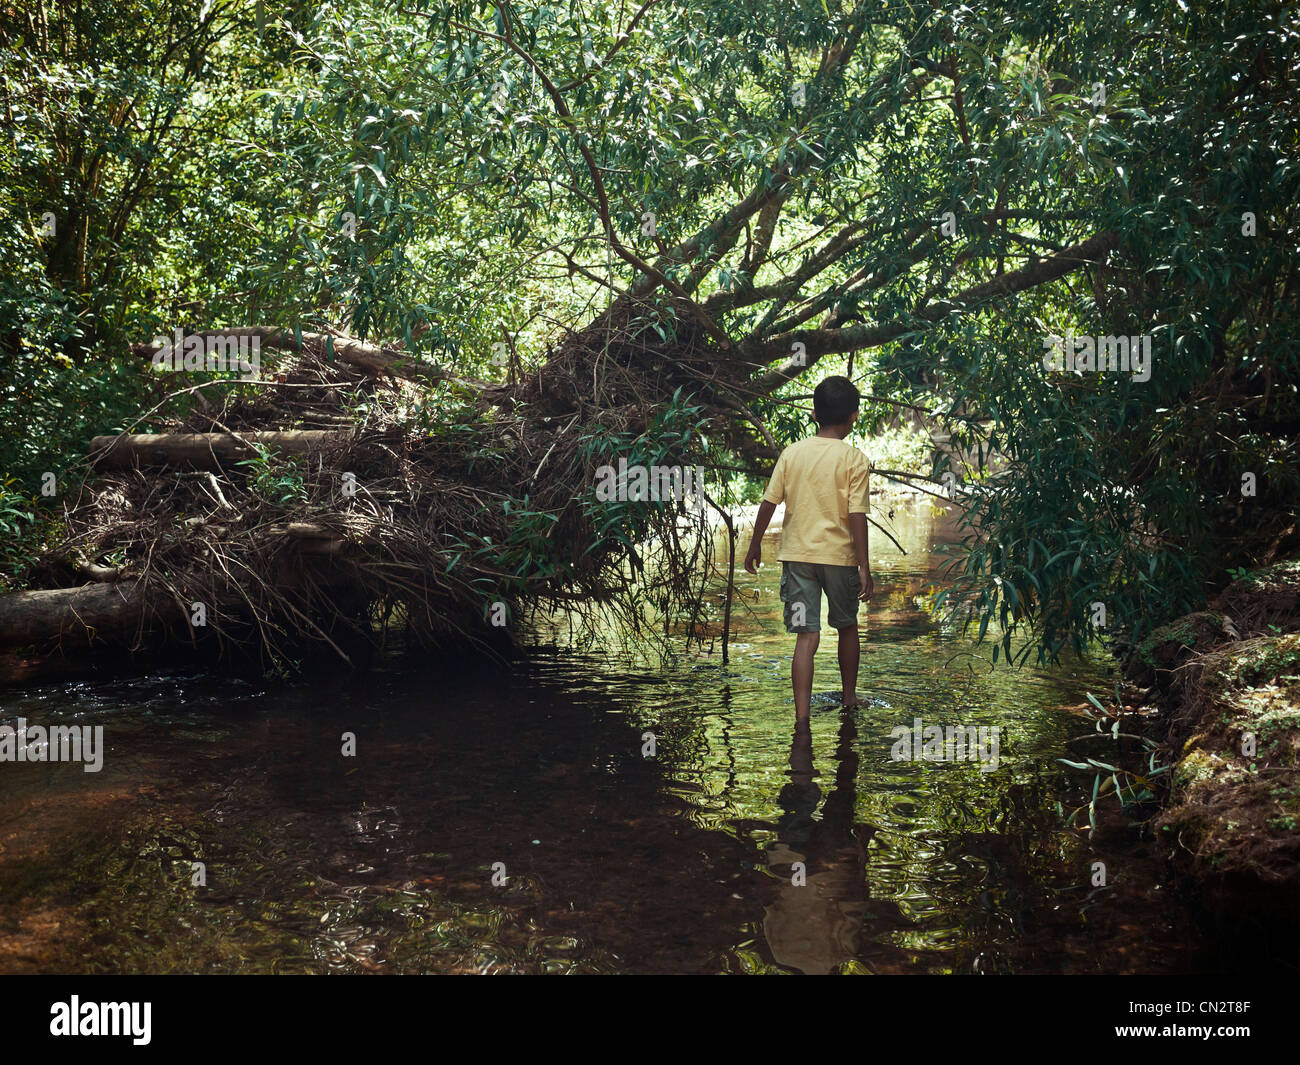 Boy wades along stream through woodland bush, New Zealand. - Stock Image